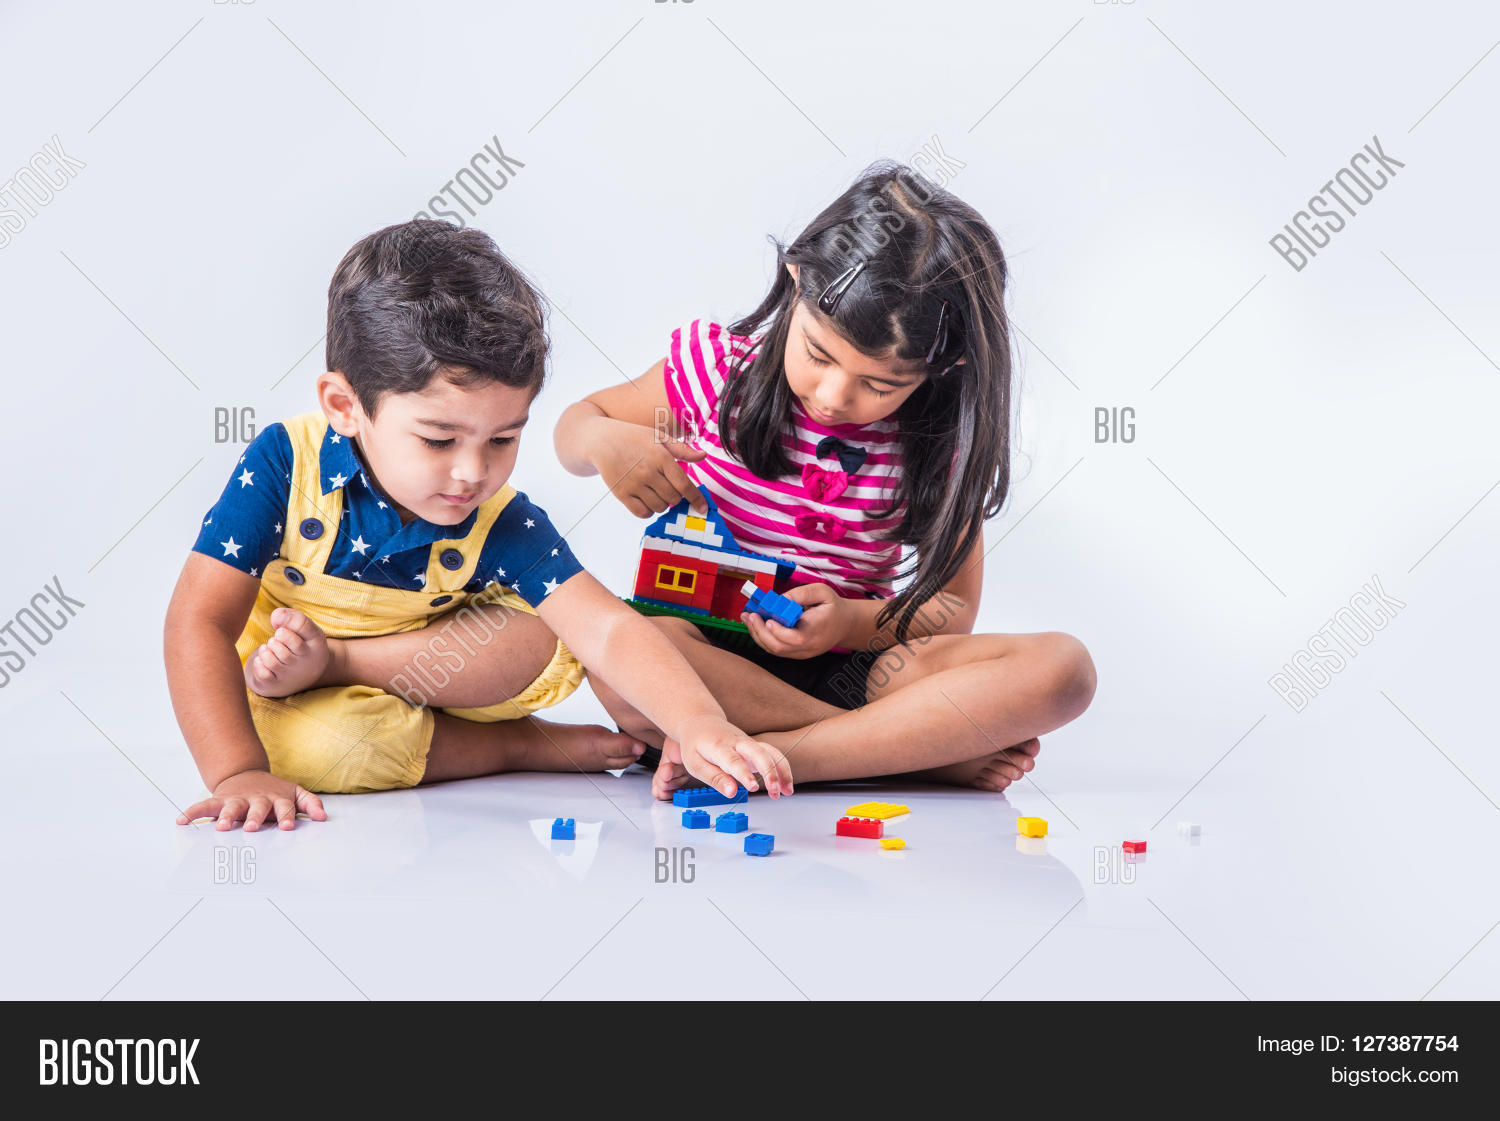 indian small kids asian brother image u0026 photo bigstock